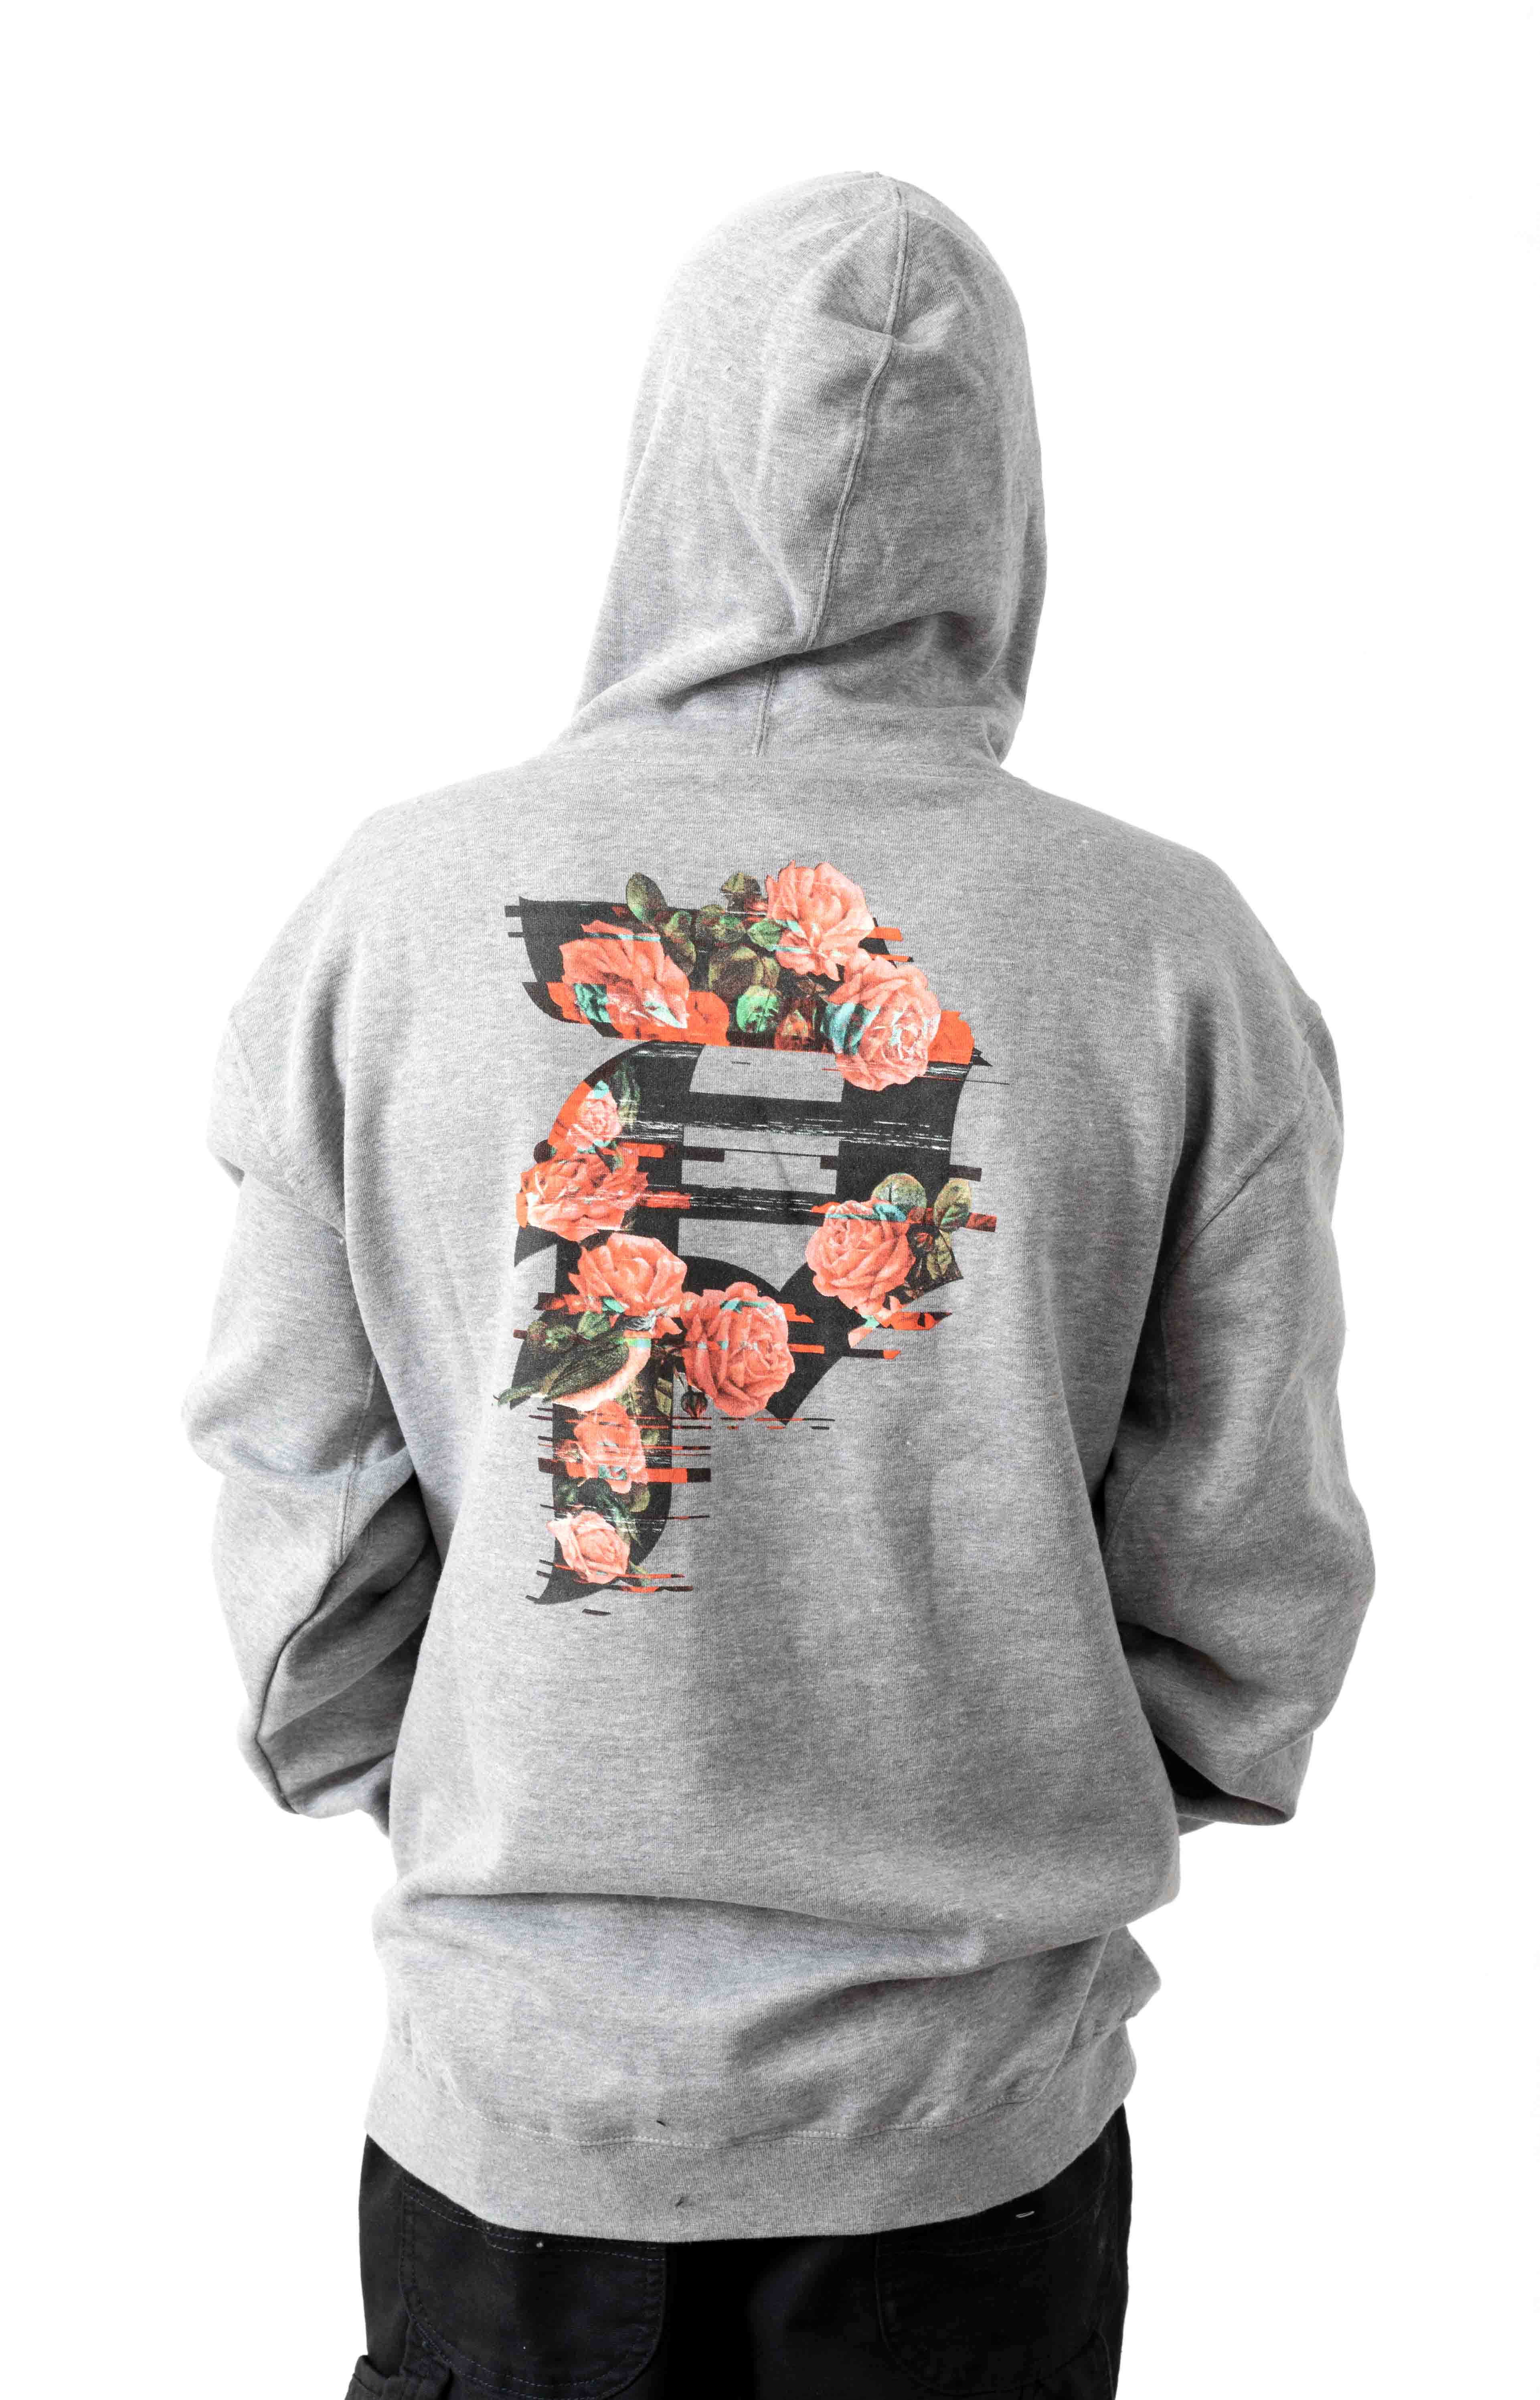 Dirty P Glitch Pullover Hoodie - Grey